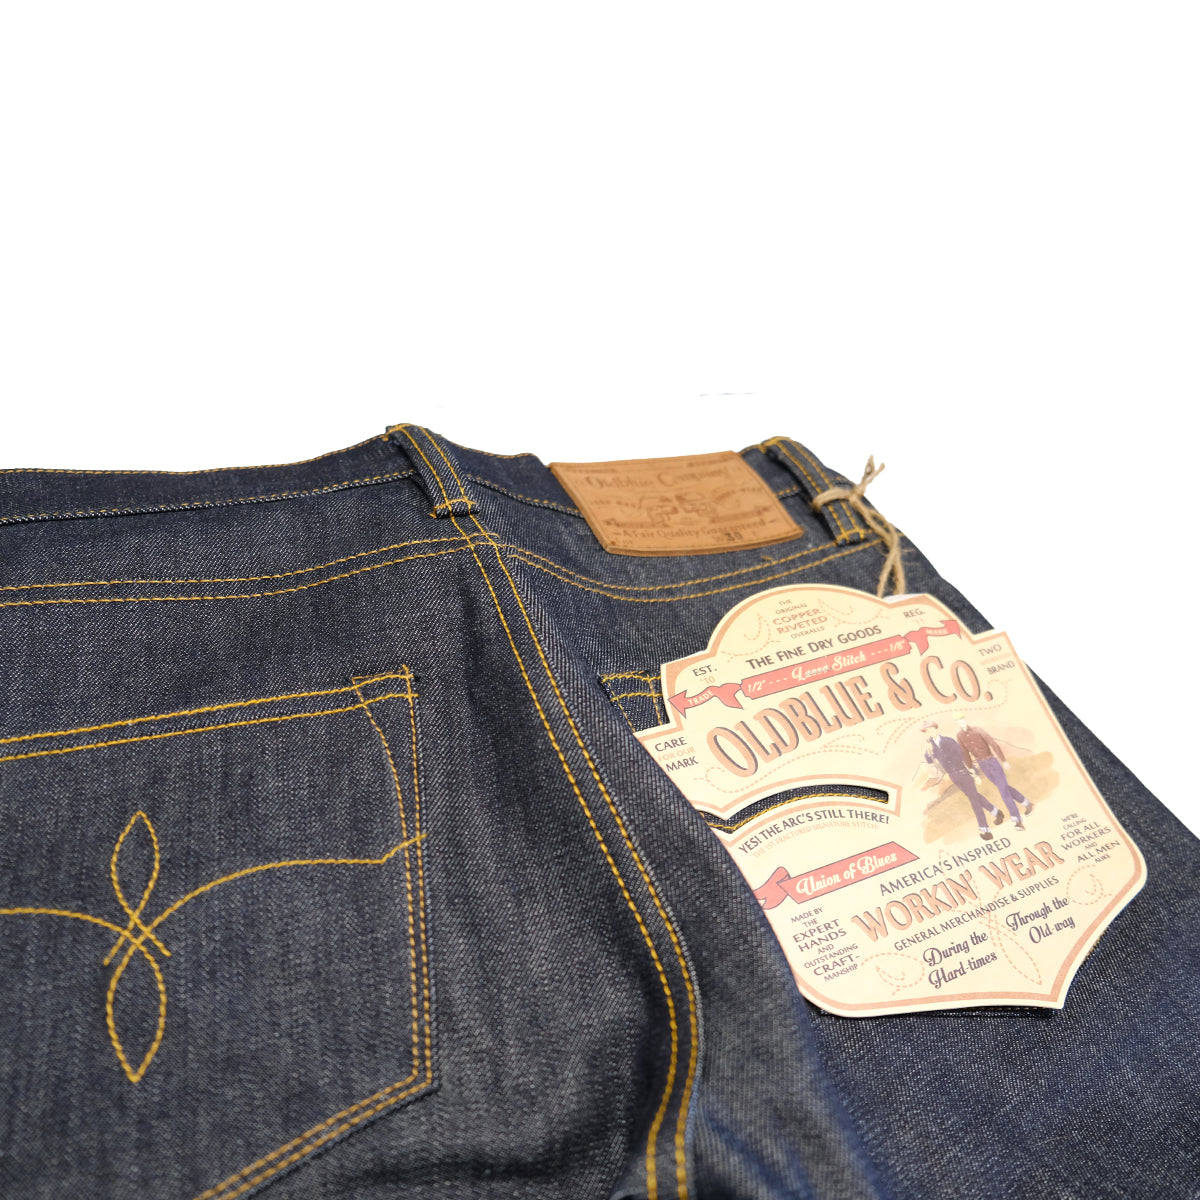 "7.75"" Cut 14 oz. Indigo White Oak Cone Mills Selvedge Denim Jeans"